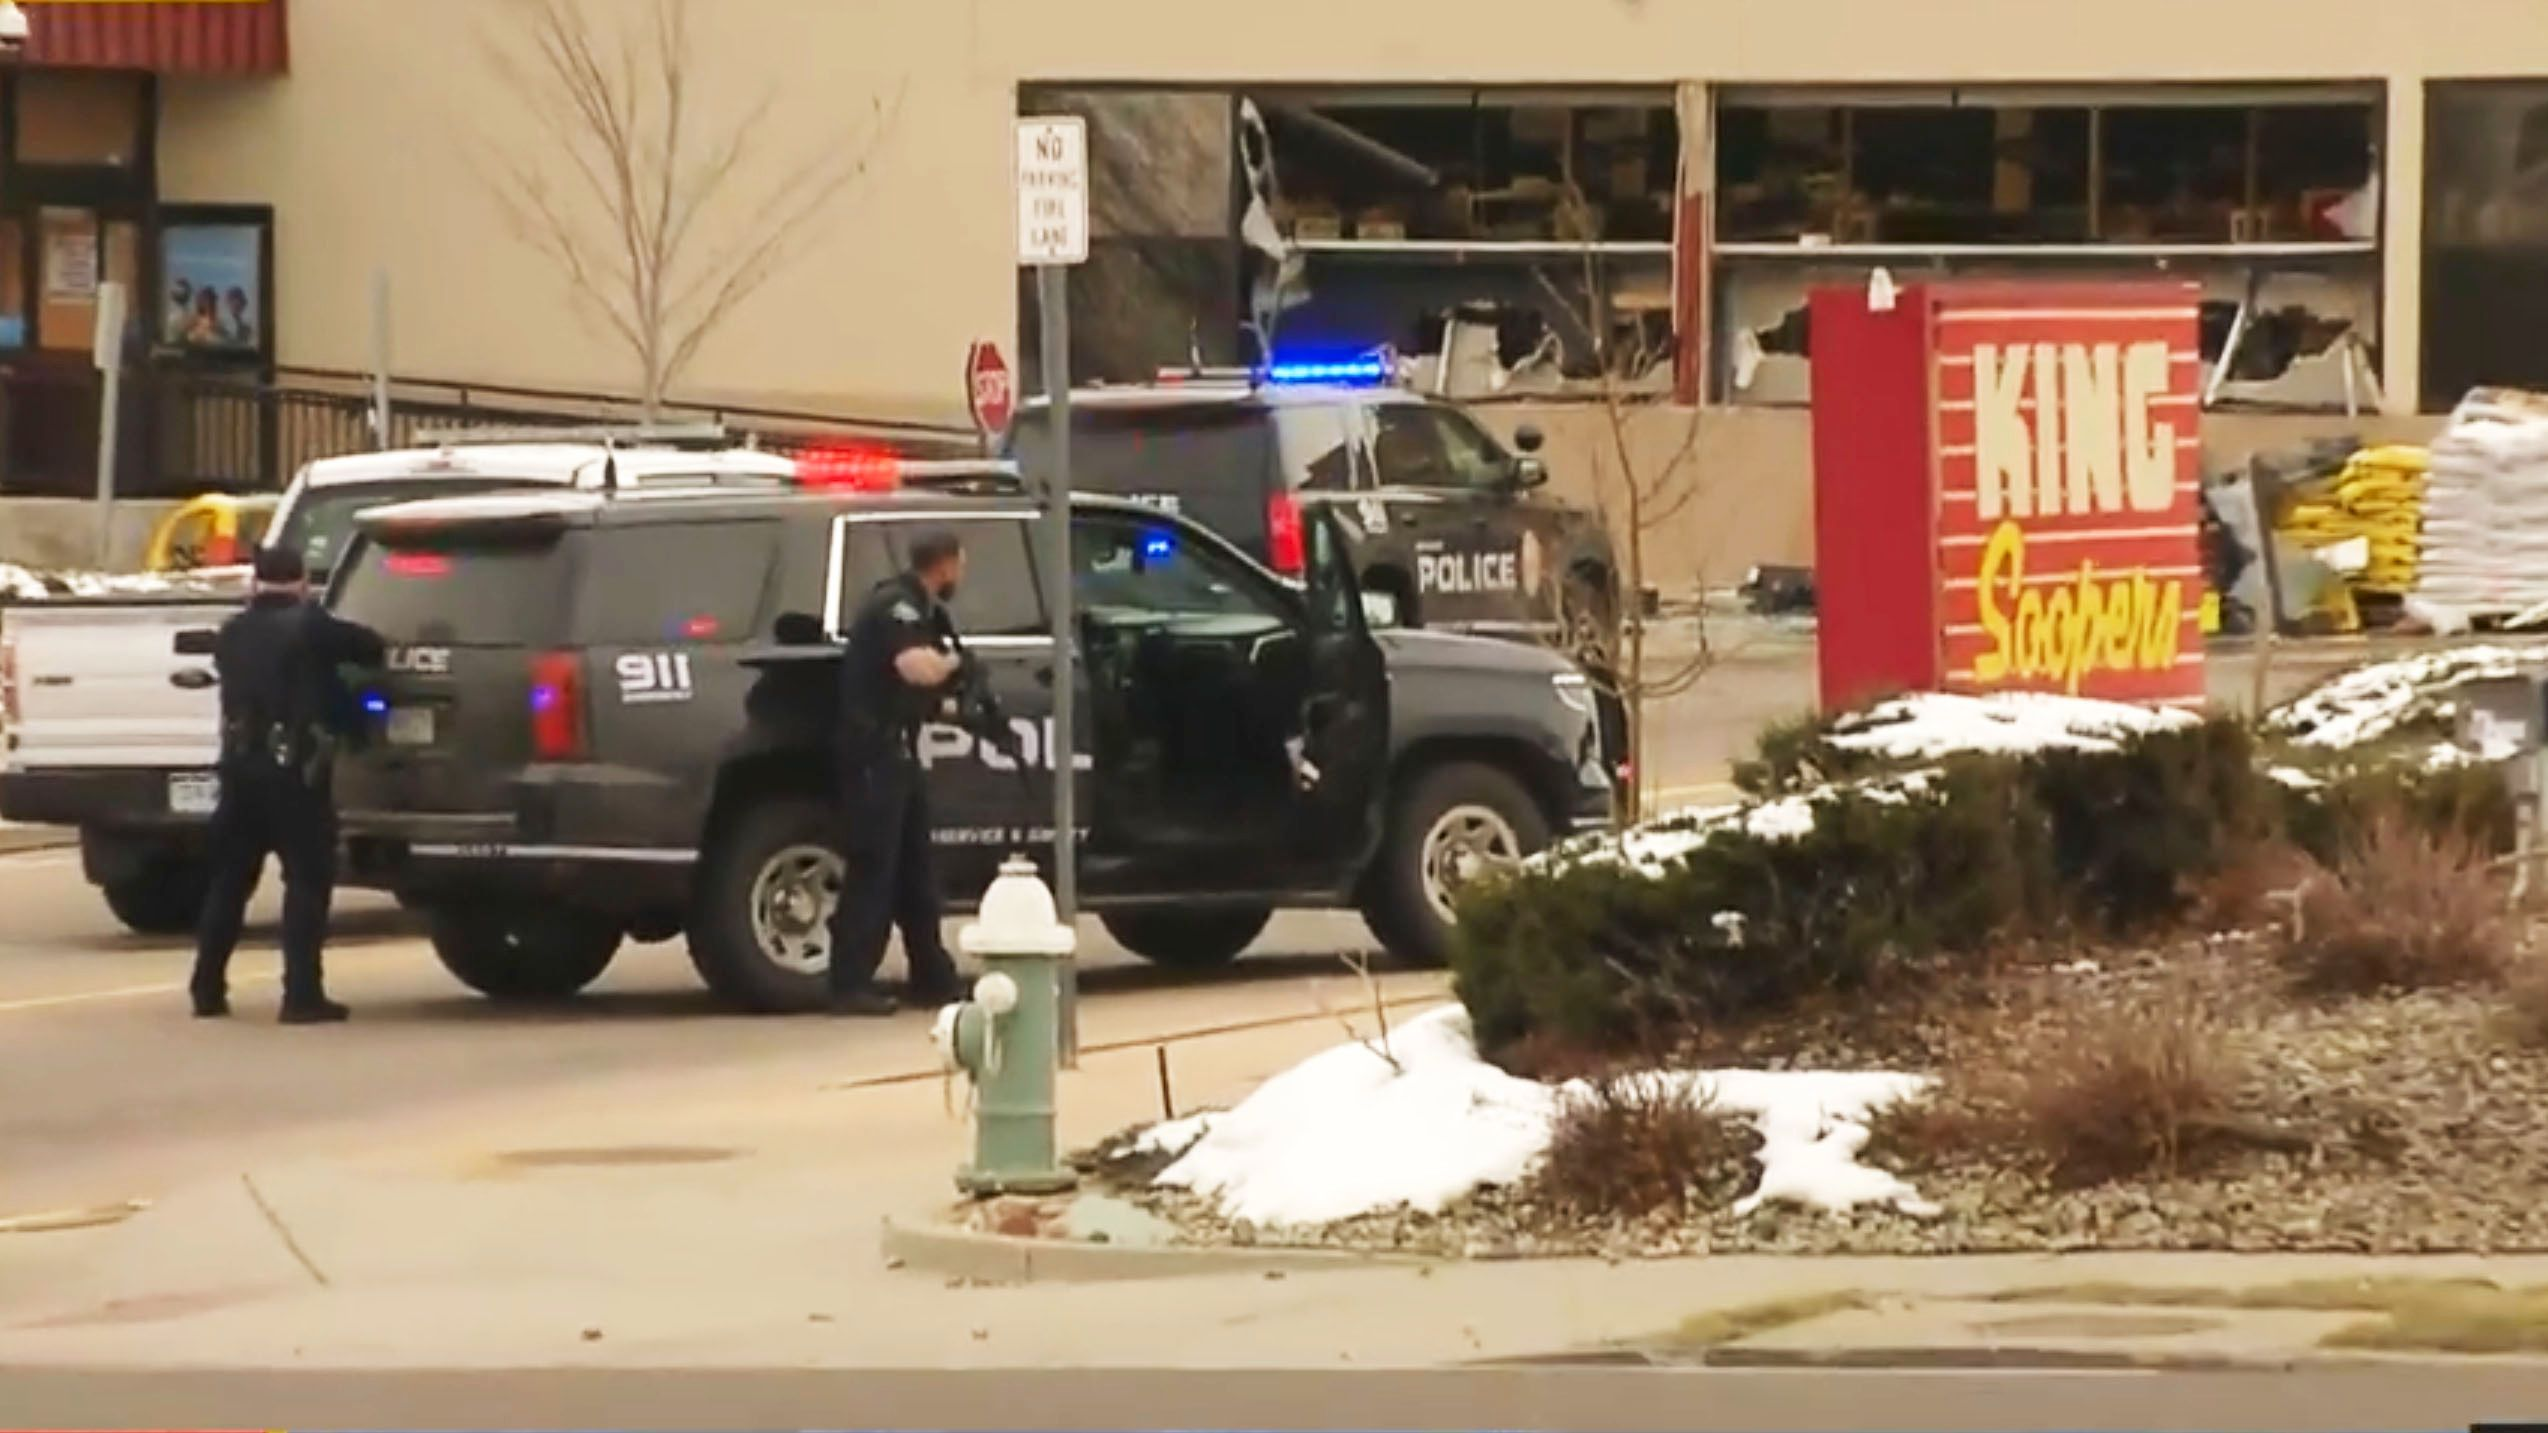 Police take positions outside the King Soopers grocery store in Boulder, Colorado, on Monday after reports of an active shoot